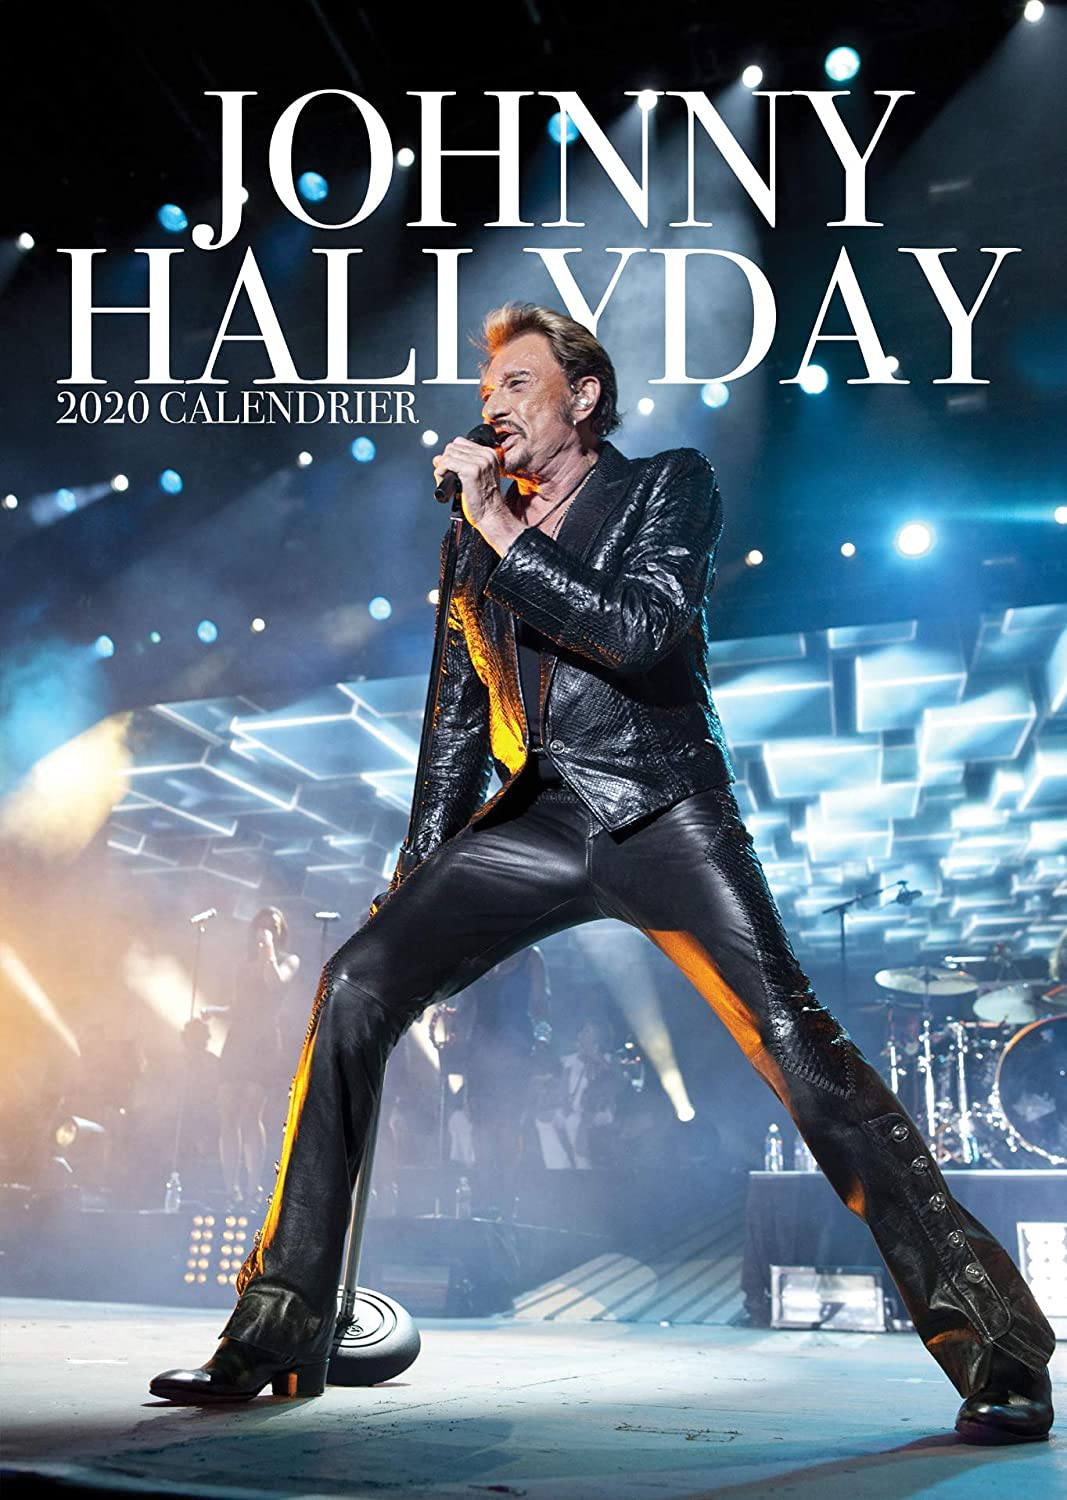 Calendrier 2020 Johnny Hallyday Officiel.Johnny Hallyday Calendrier 2020 Limited French Edition Metal Machine Aimant De Refrigerateur